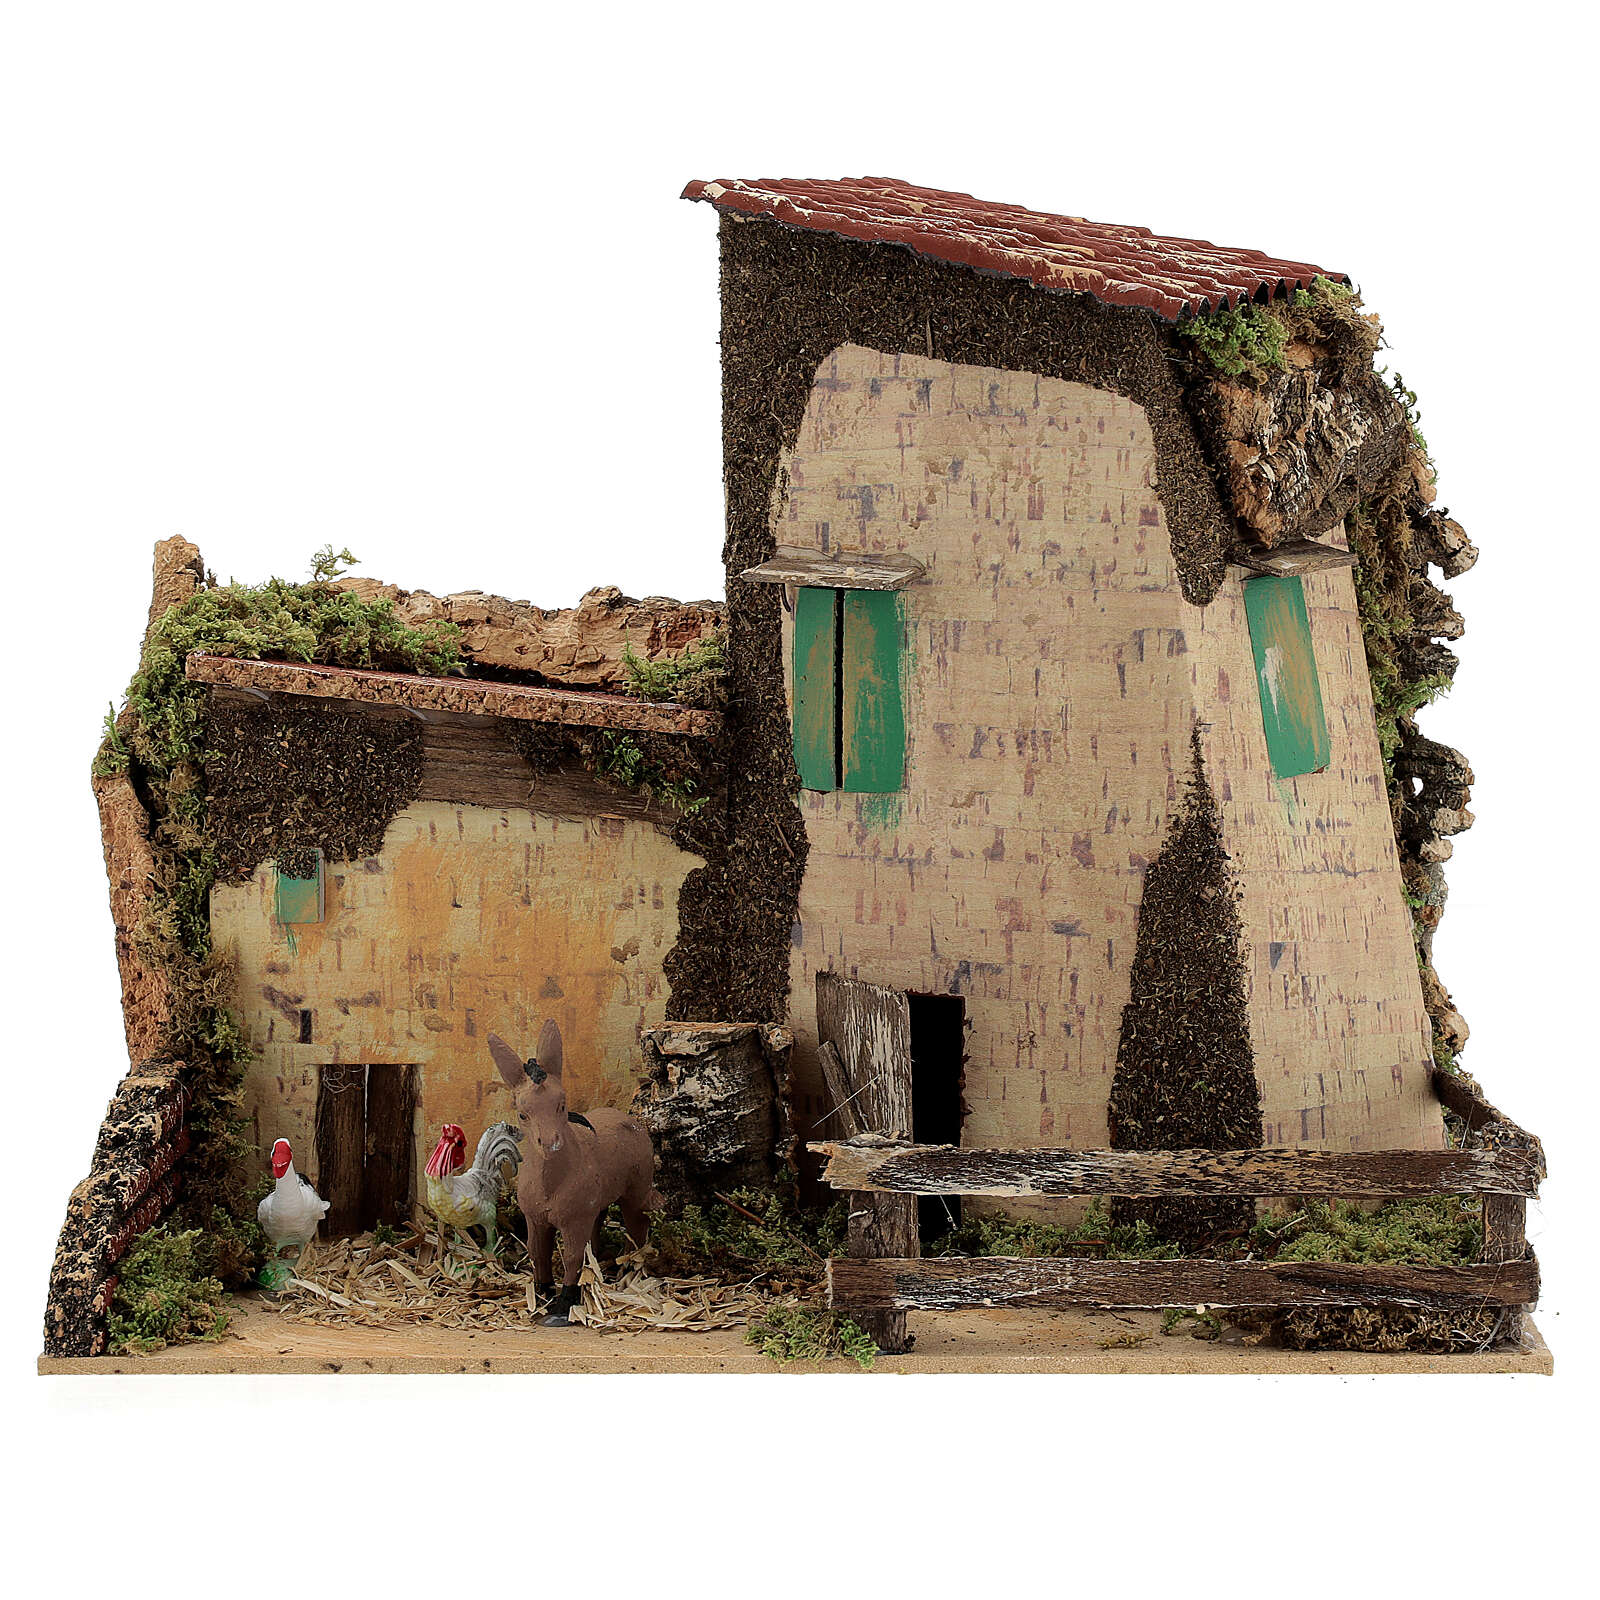 Nativity setting, farmhouse with gallinaceans and donkey 20x28x1 4